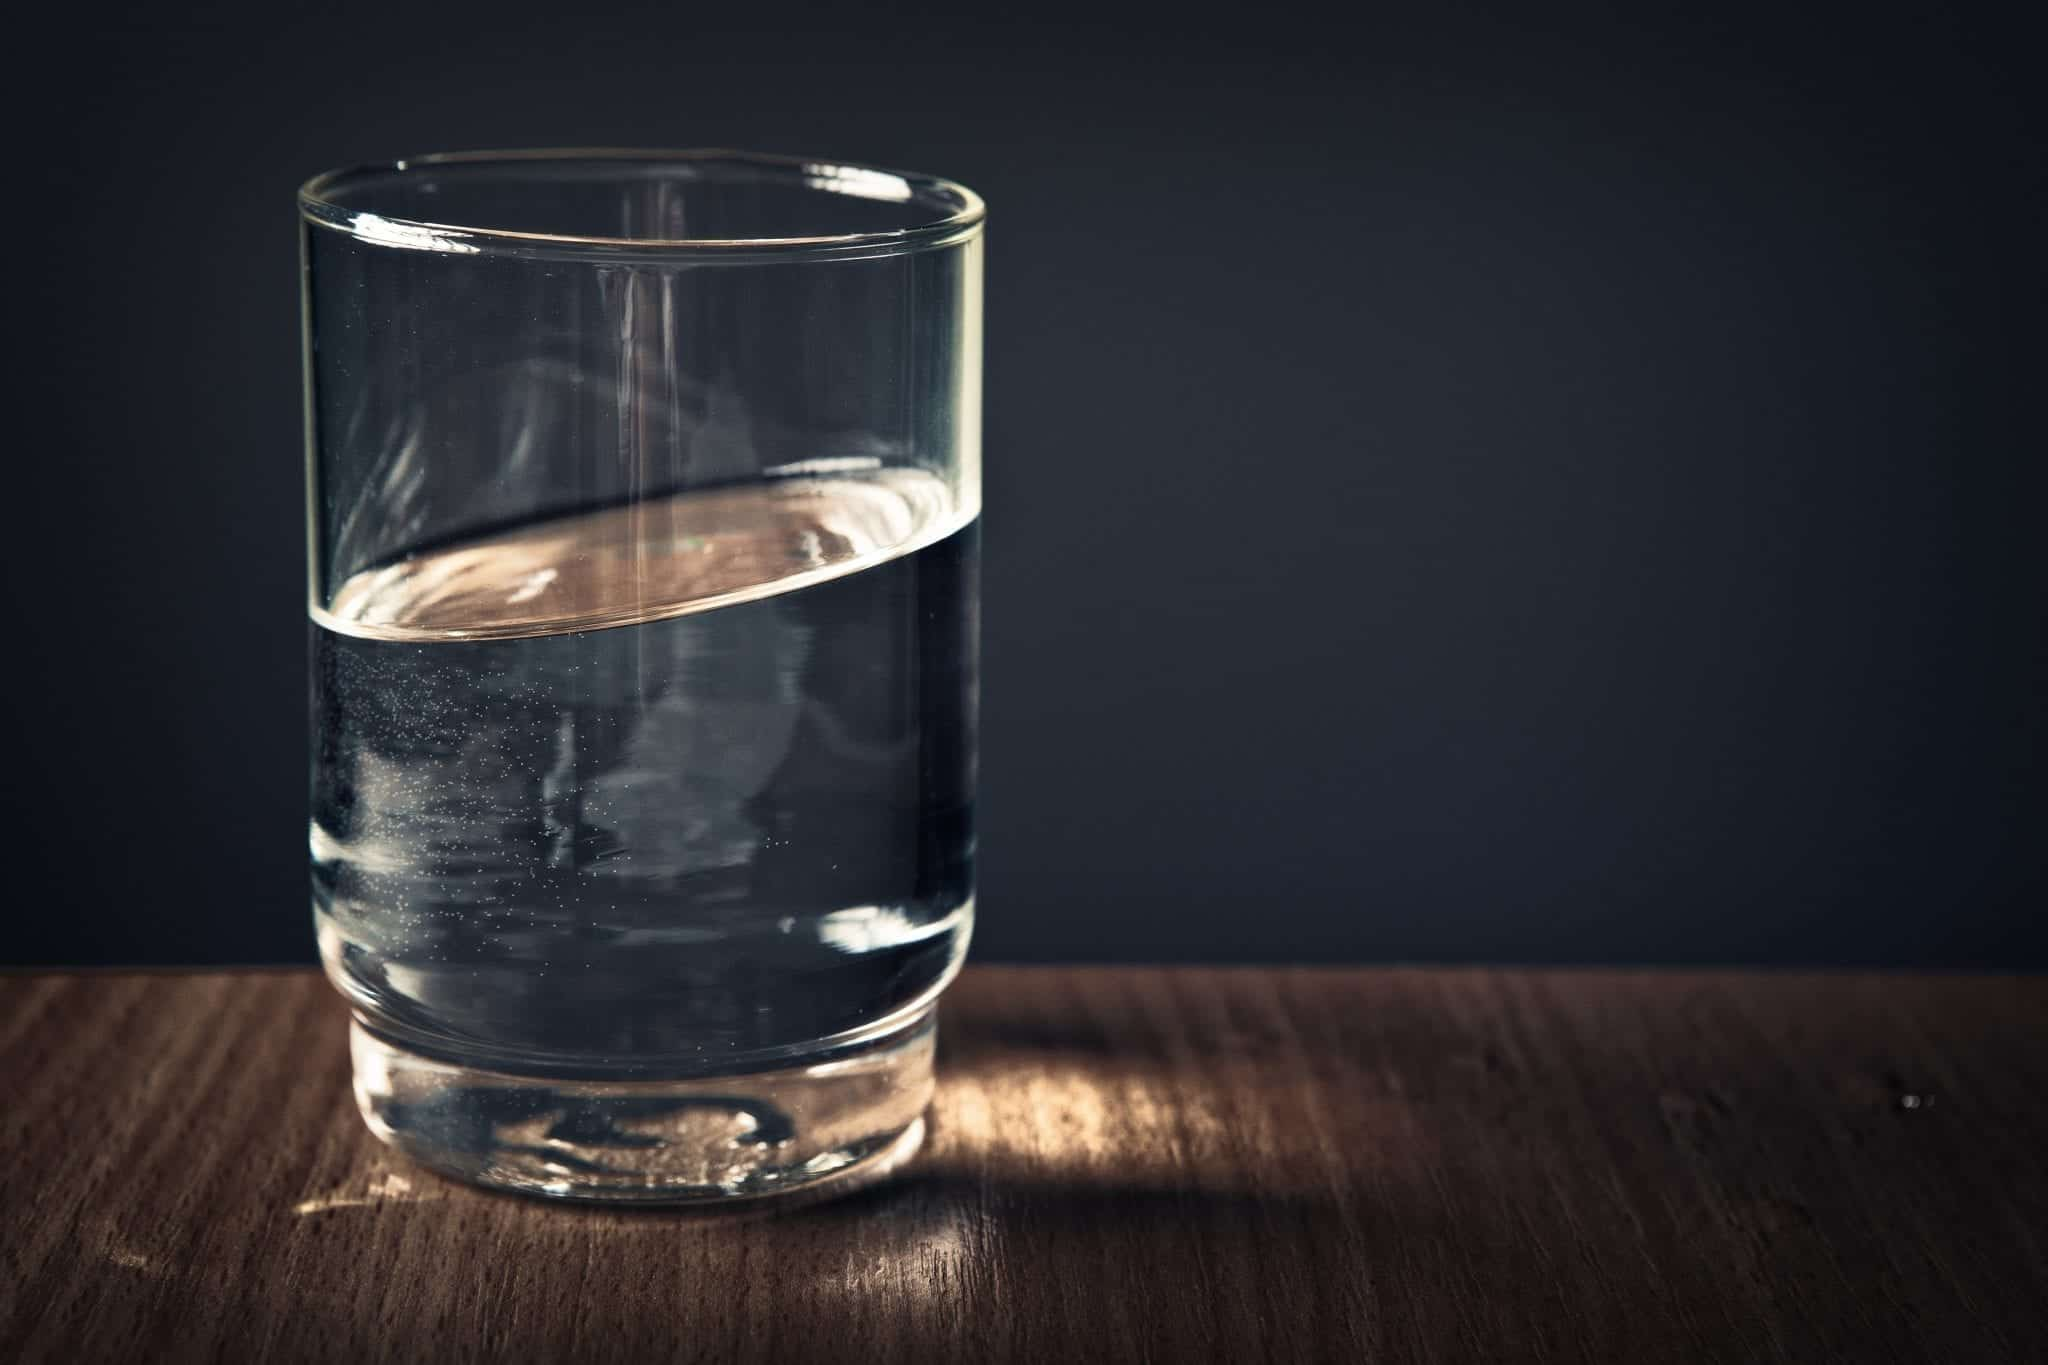 Glass of clear water; image by Stephan Müller, via Pexels.com, CC0.